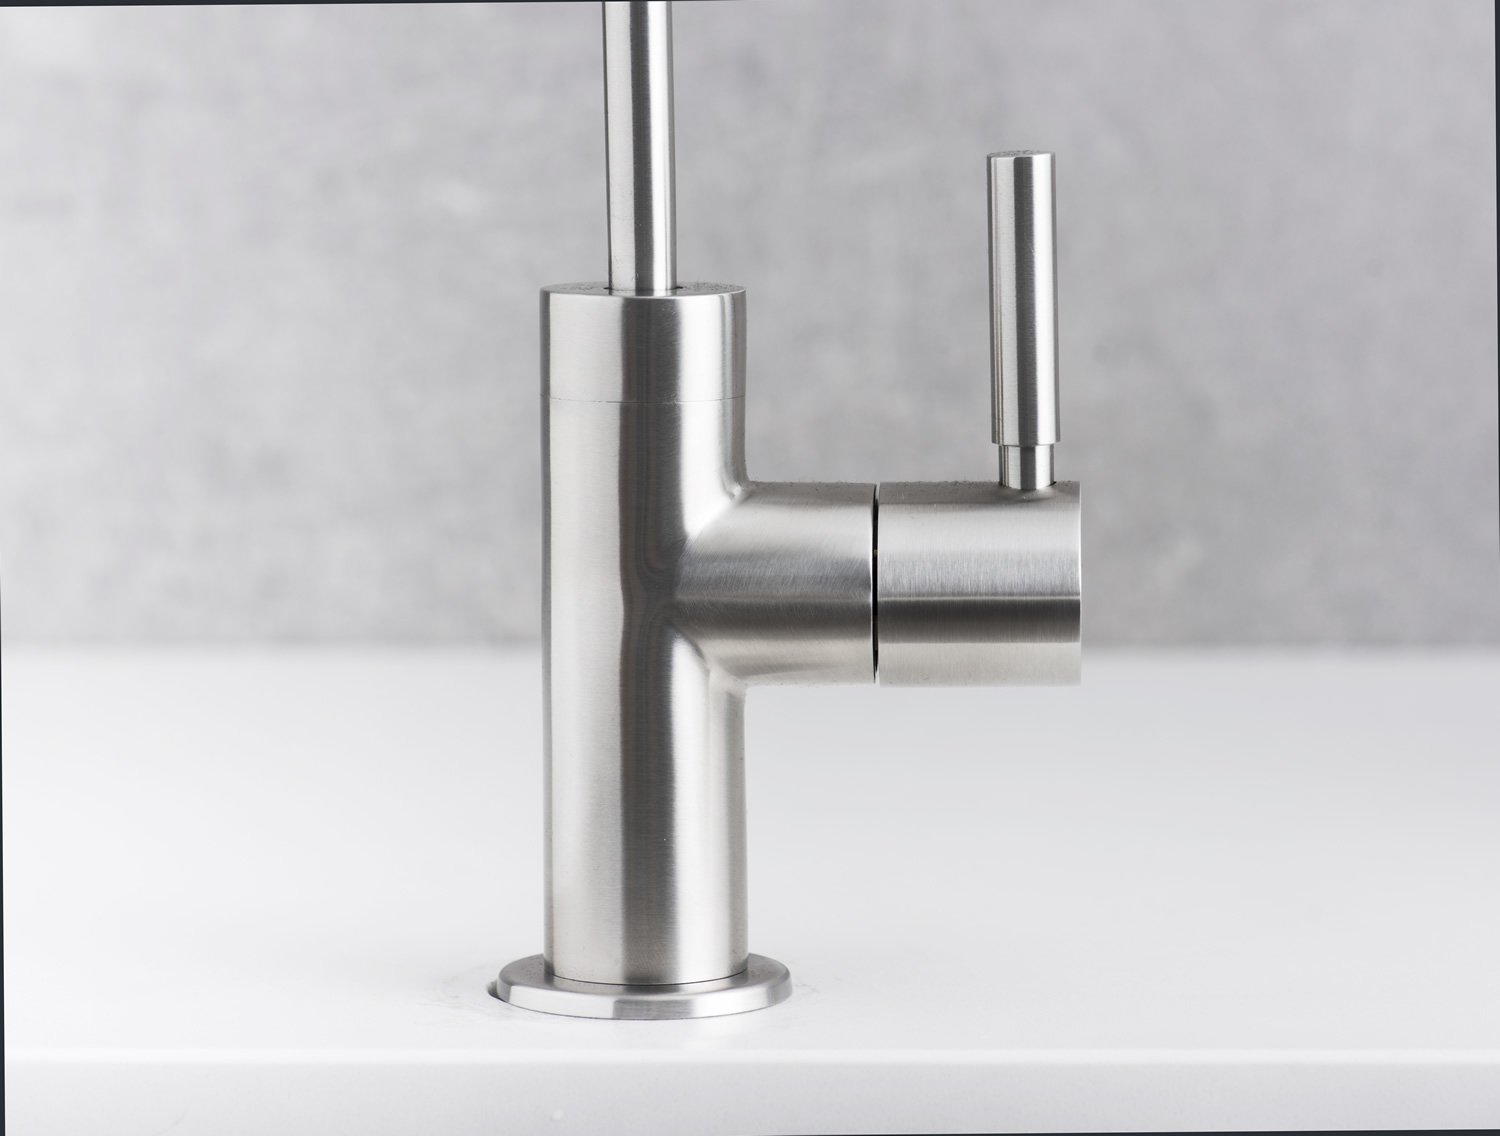 DAX Drinking Water Filter, Stainless Steel Body Faucet